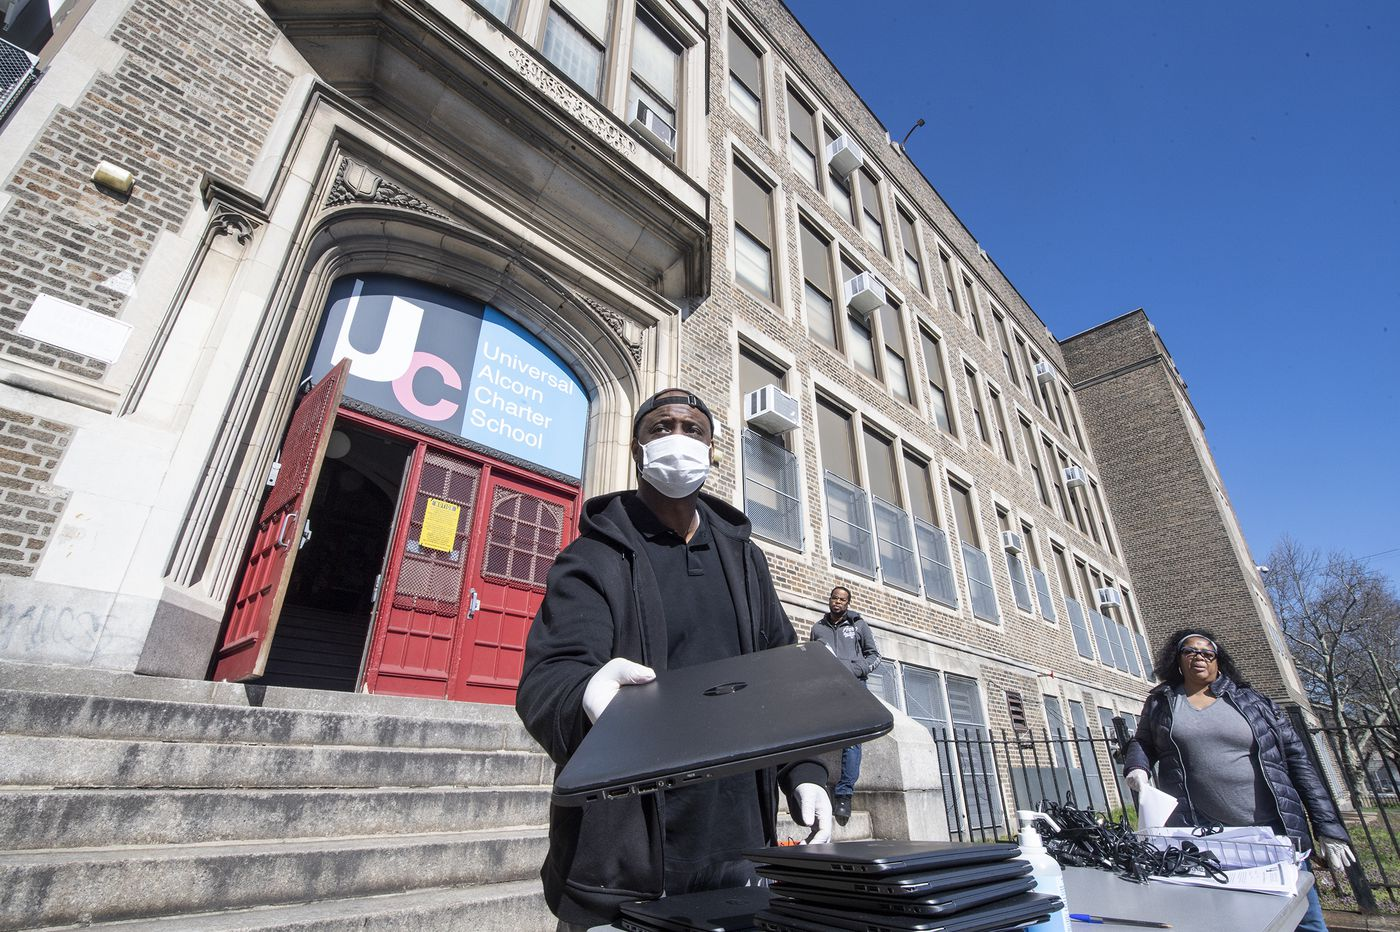 15,000 Philly charter and parochial school students are getting Chromebooks to learn during coronavirus closures